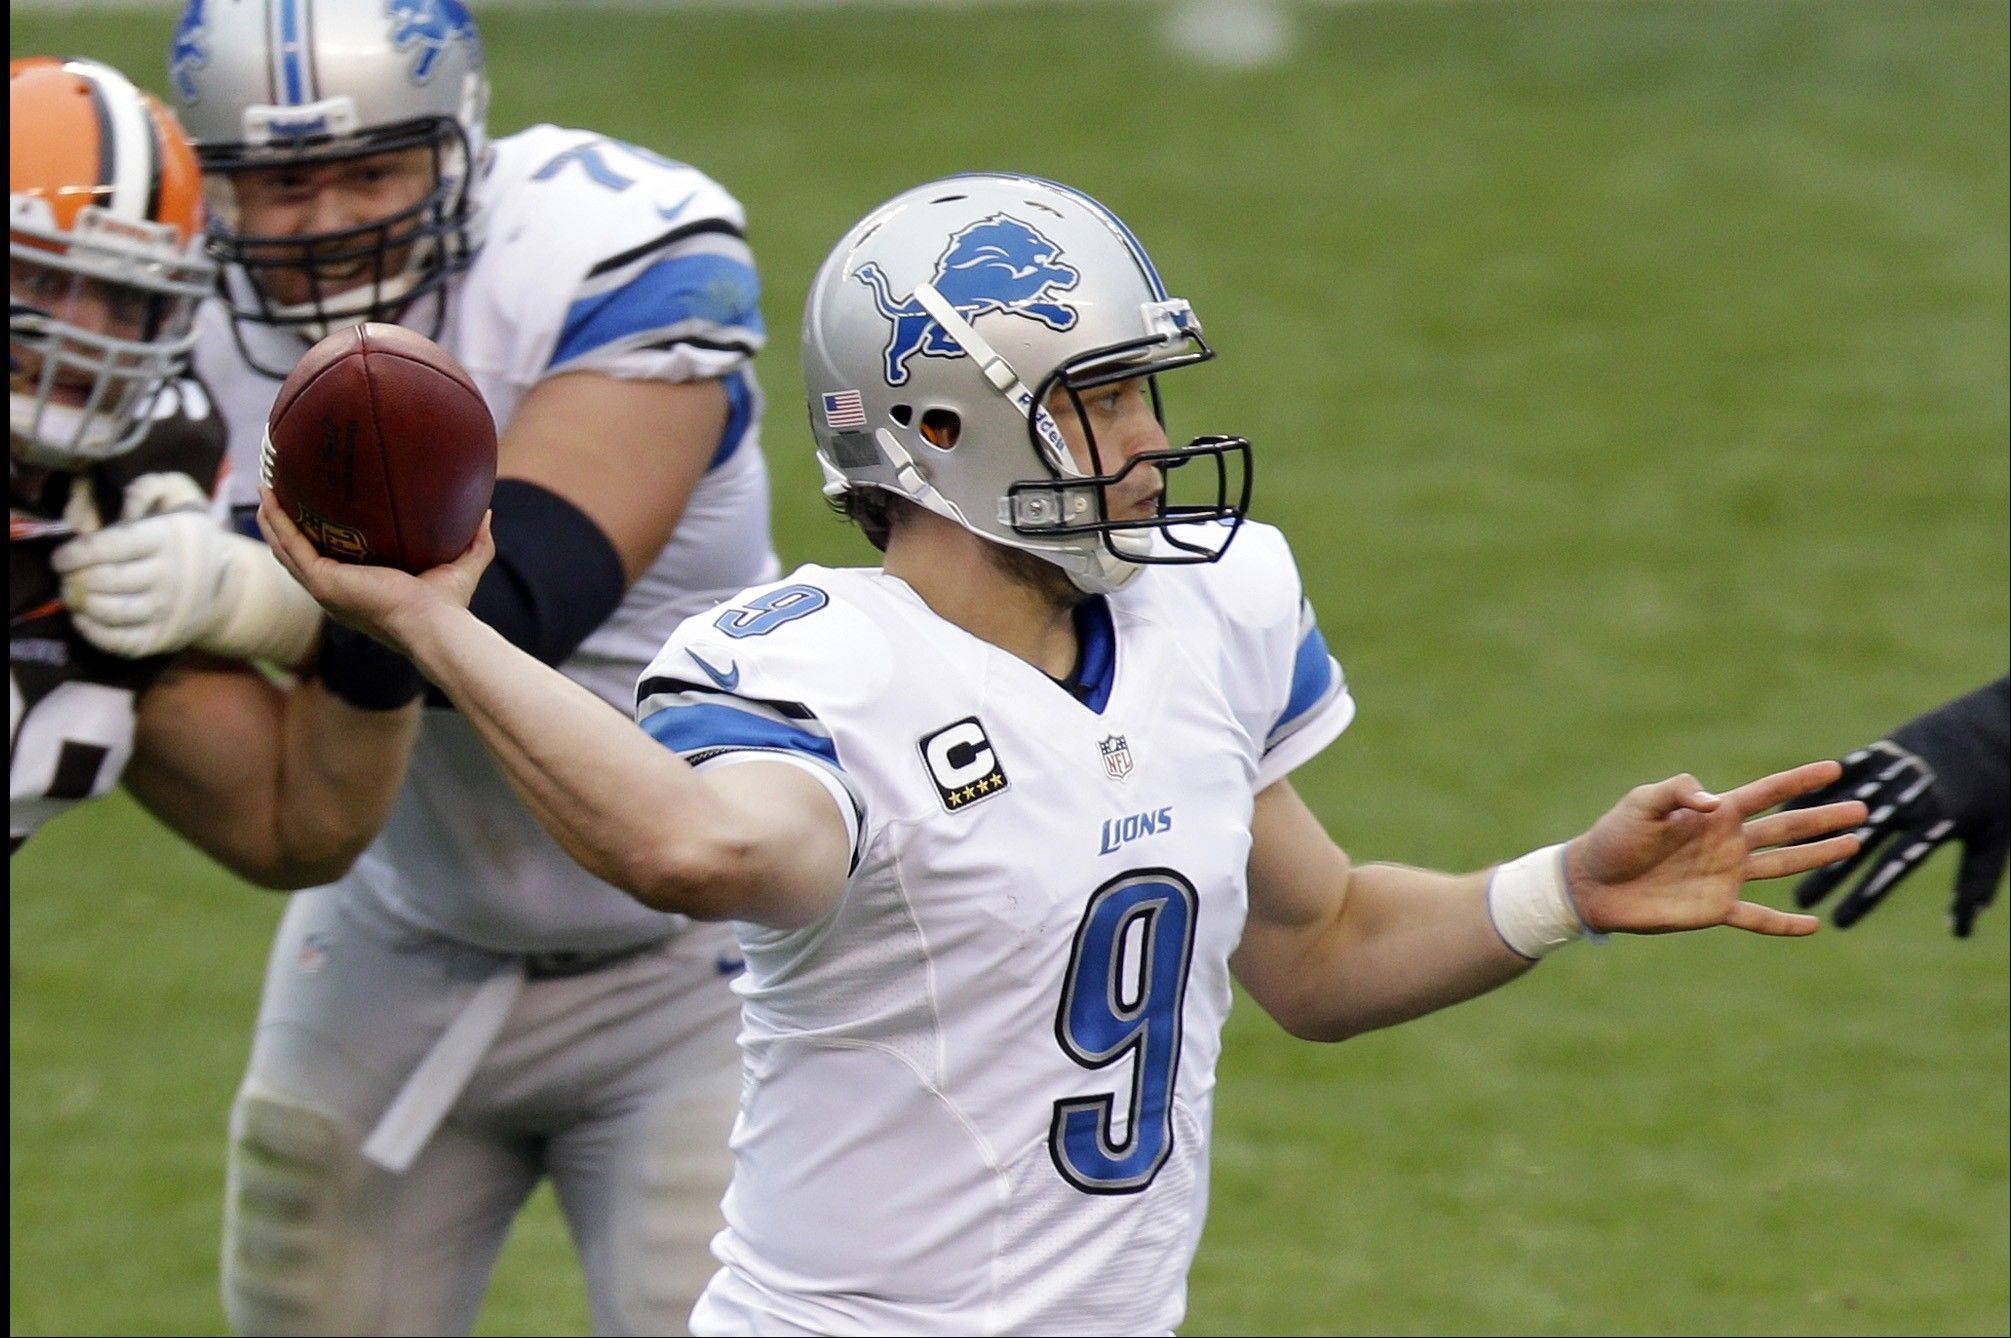 Stafford jump-starts Lions in 31-17 win over Browns